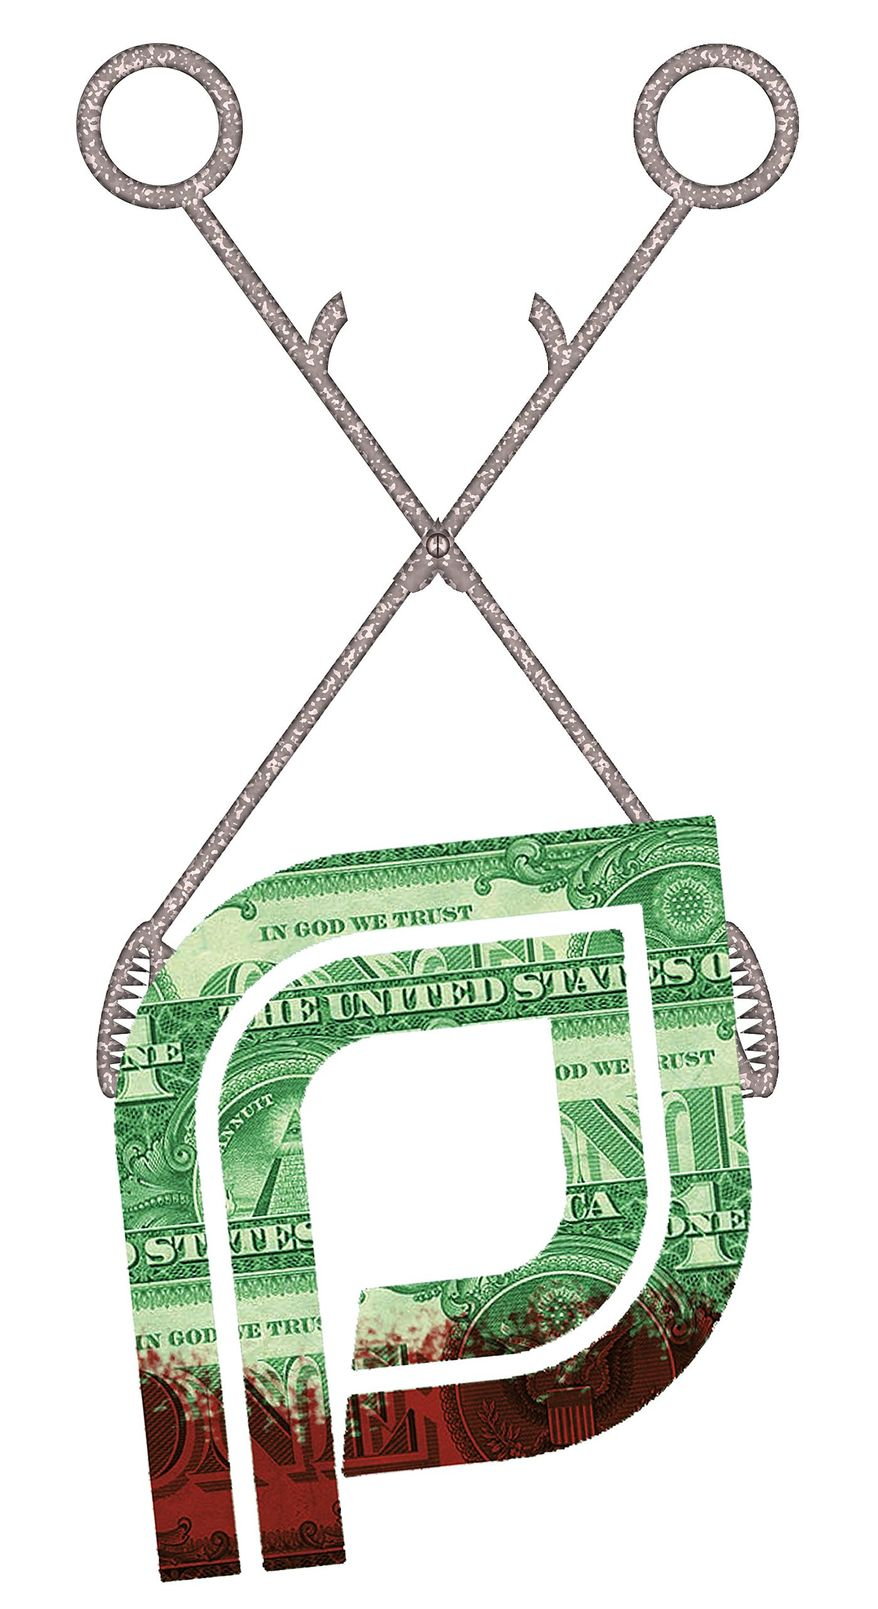 Illustration on ending taxpayer funding of Planned Parenthood by Alexander Hunter/The Washington Times